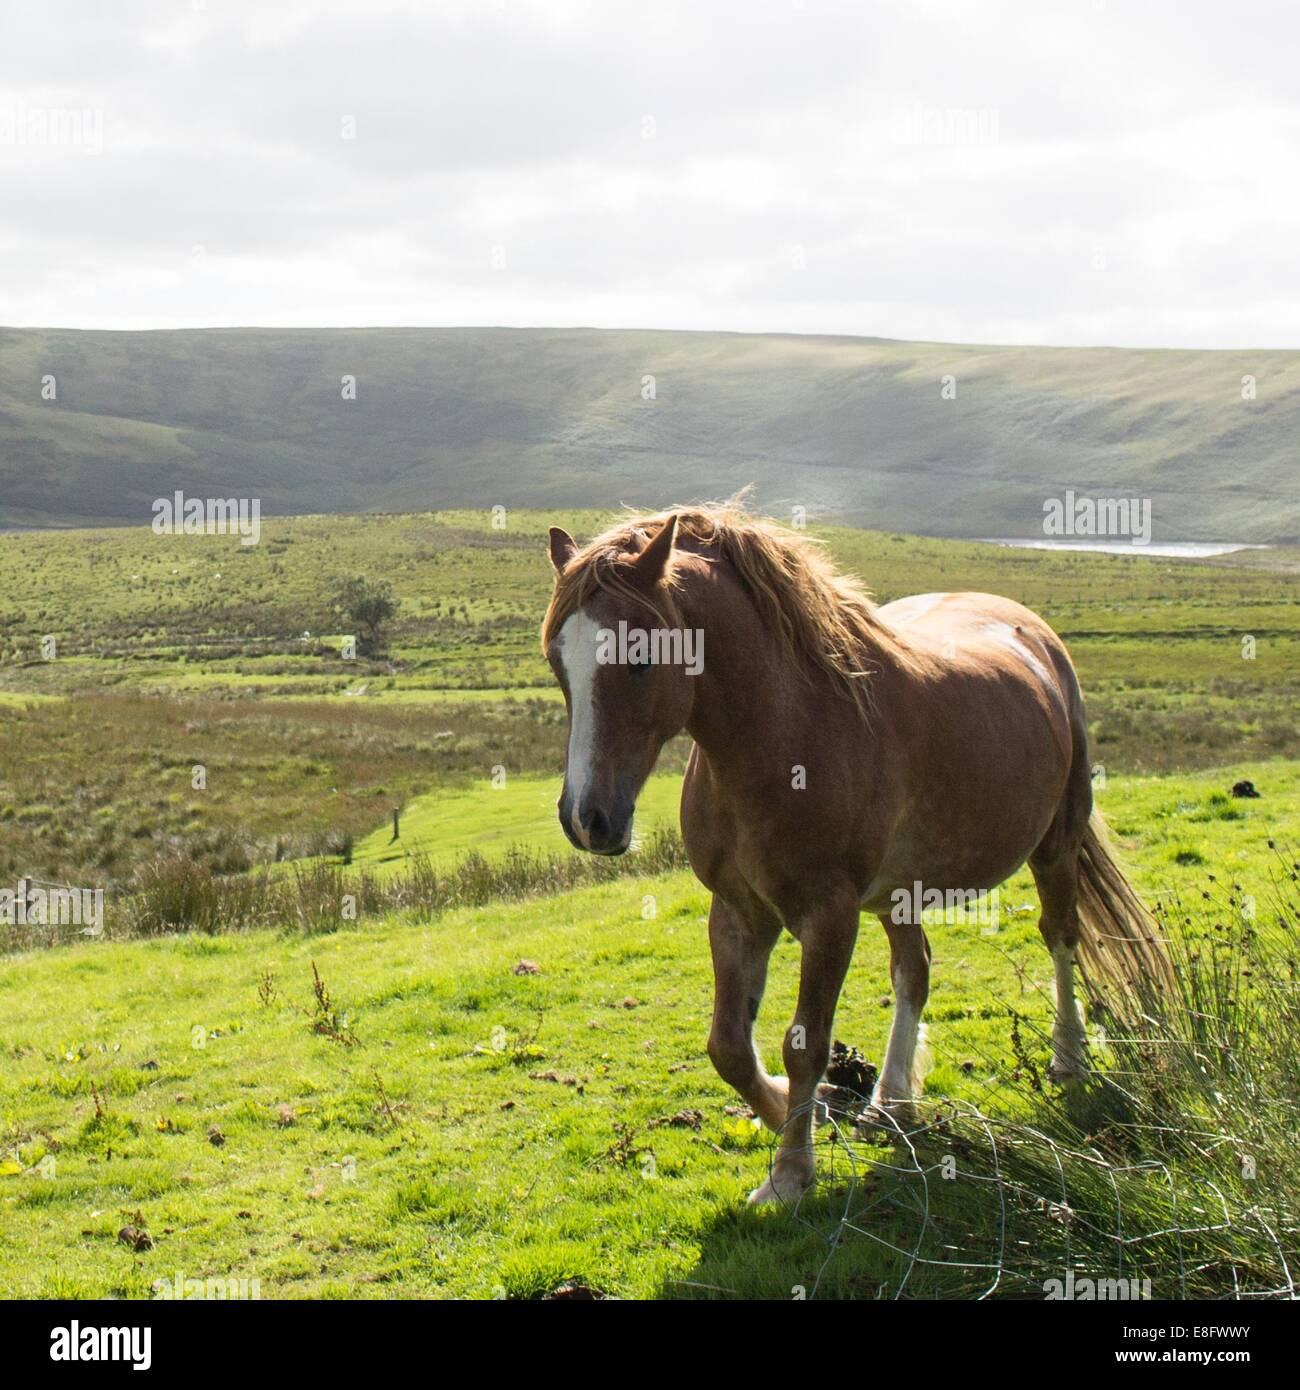 Horse in countryside Stock Photo